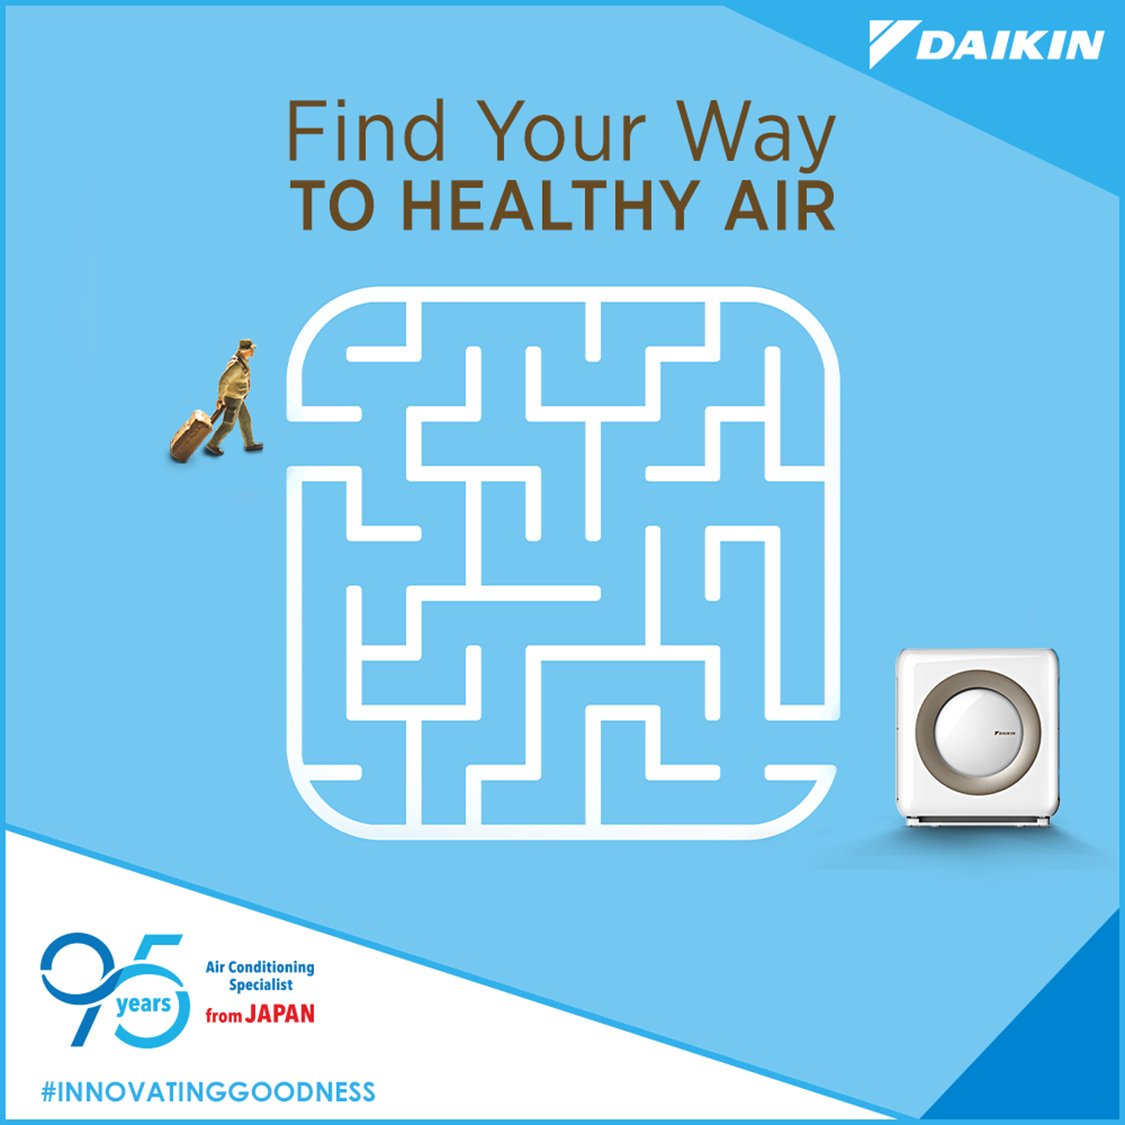 Did you find a way yet If not, DM us and well help you find the perfect air purifier. InnovatingGoodness https t